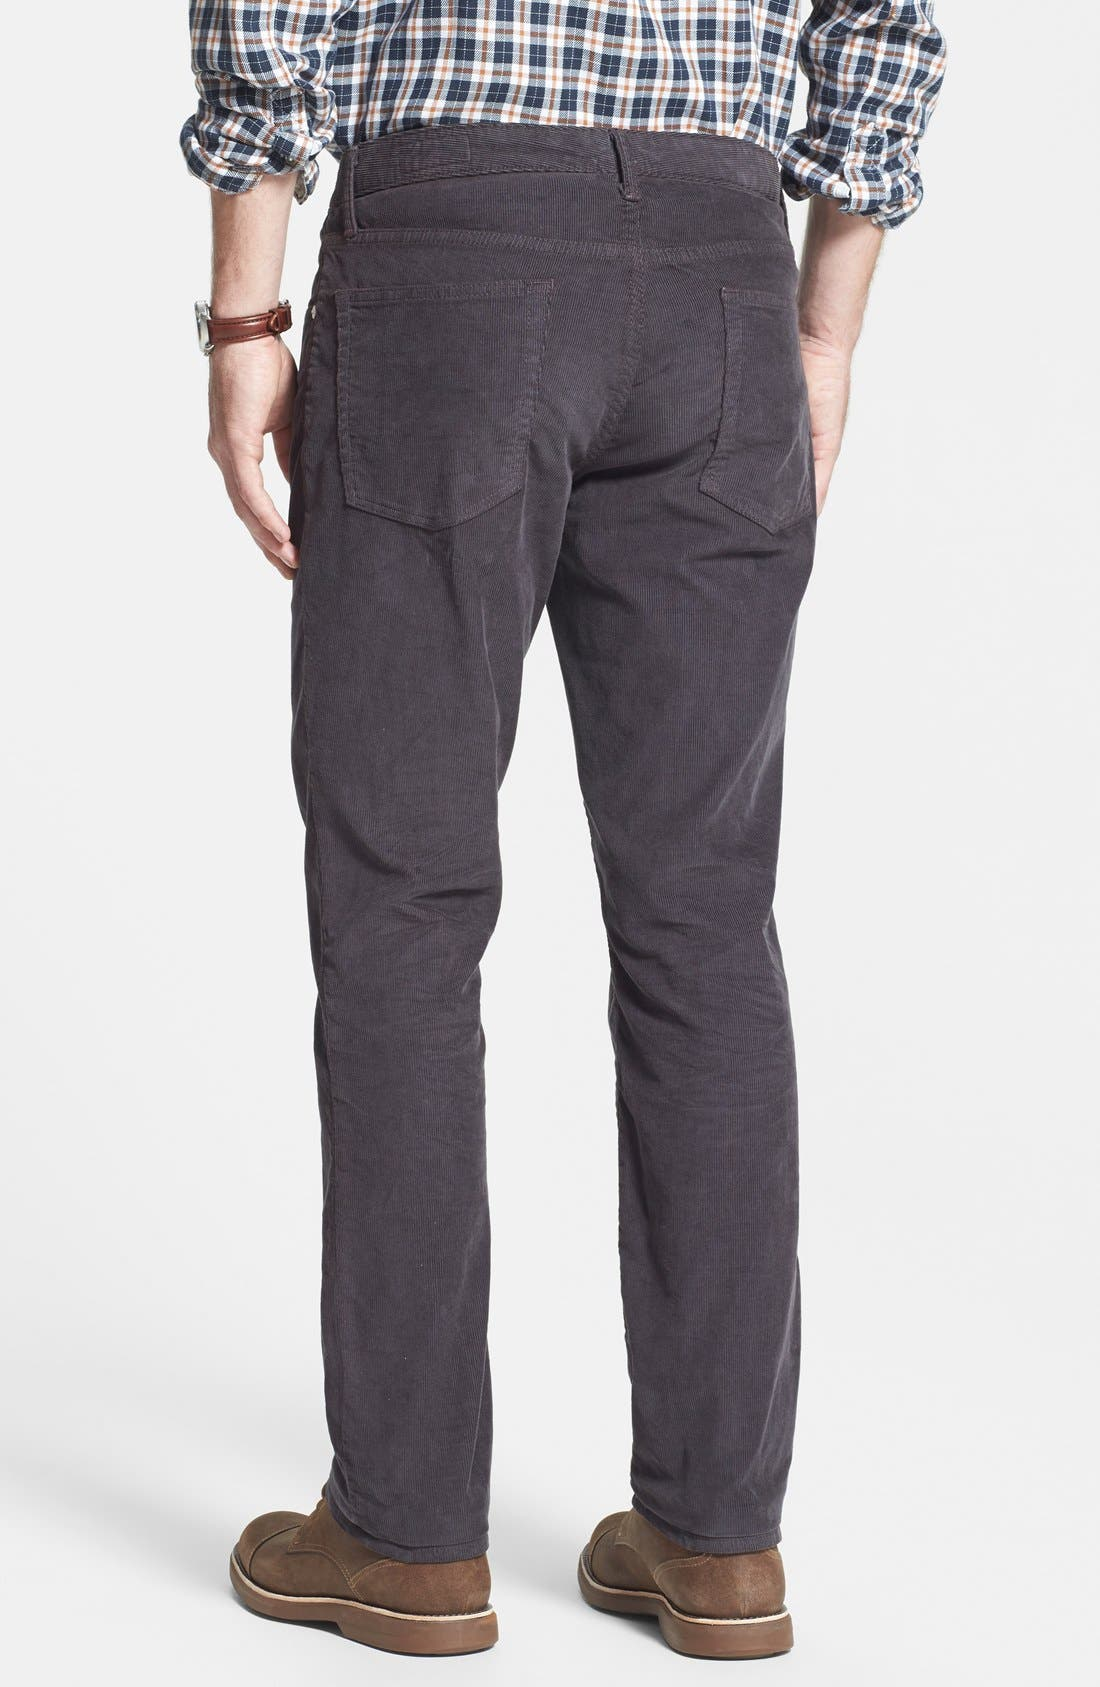 BONOBOS,                             Straight Leg Five-Pocket Corduroy Pants,                             Alternate thumbnail 3, color,                             020